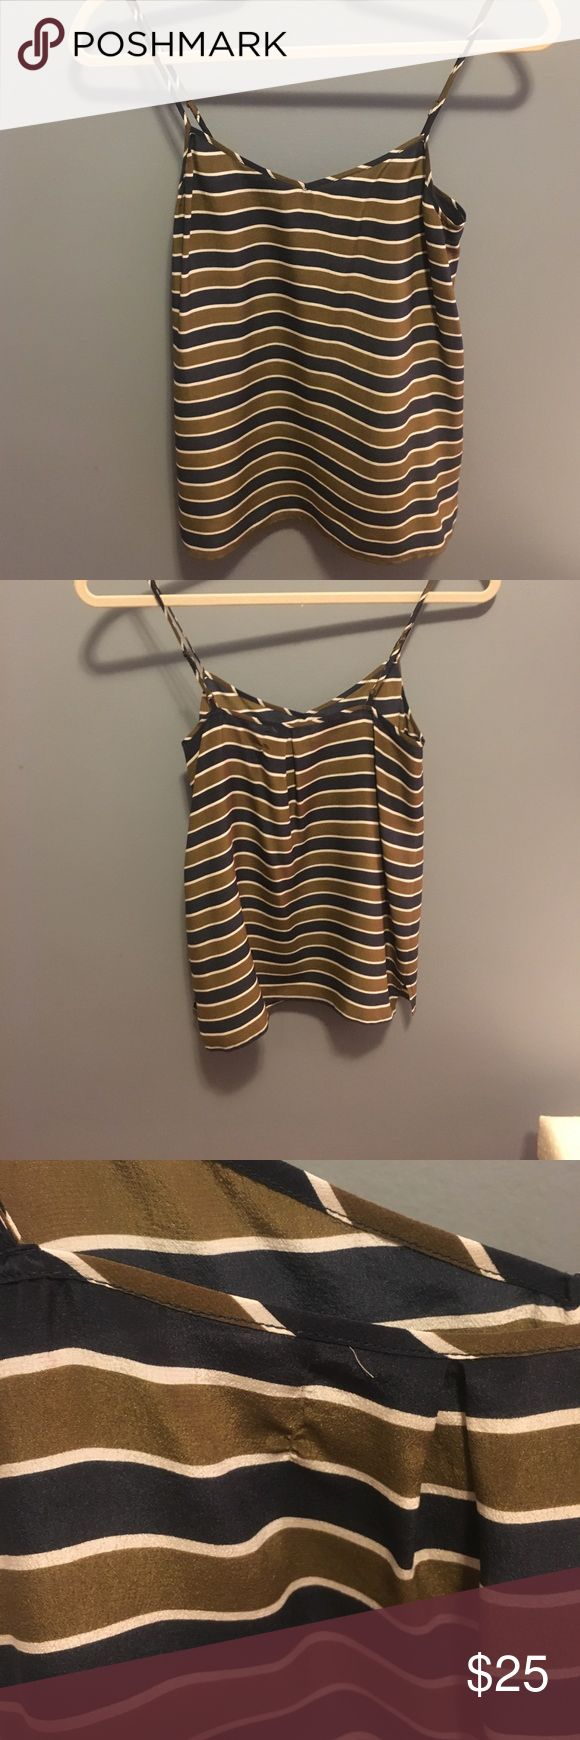 Madewell Cami - size XS Navy, olive and white silk striped cami from Madewell (Broadway & Broome brand). Size XS, adjustable straps. Slight pulling on the back where the tag attaches (I documented this in the 3rd pic). Madewell Tops